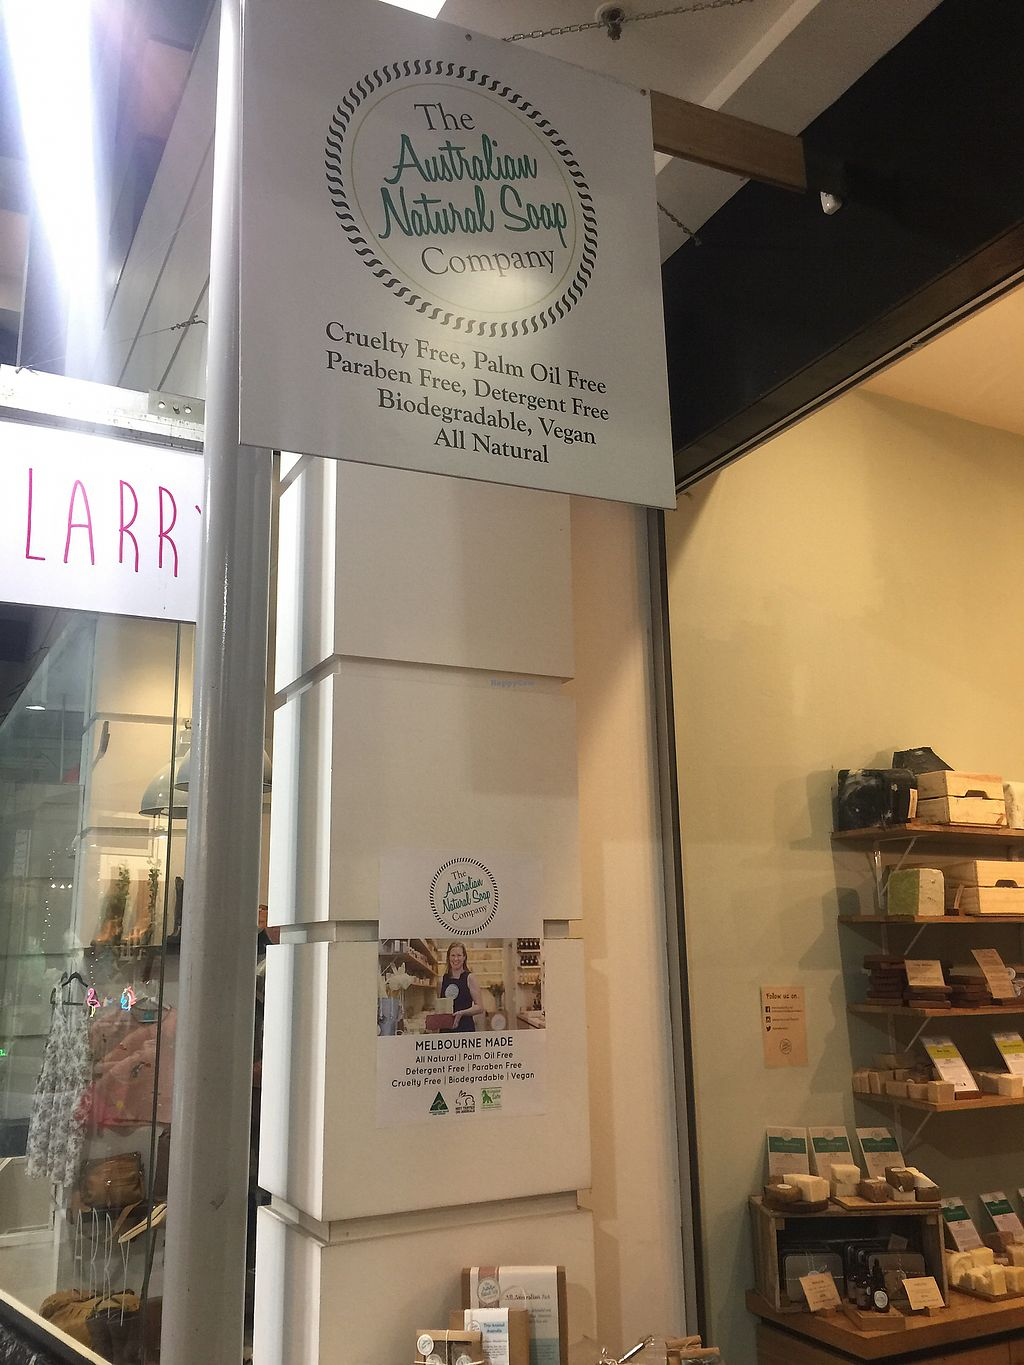 """Photo of Australian Natural Soap Company  by <a href=""""/members/profile/Tiggy"""">Tiggy</a> <br/>Shop front  <br/> February 25, 2018  - <a href='/contact/abuse/image/112995/363785'>Report</a>"""